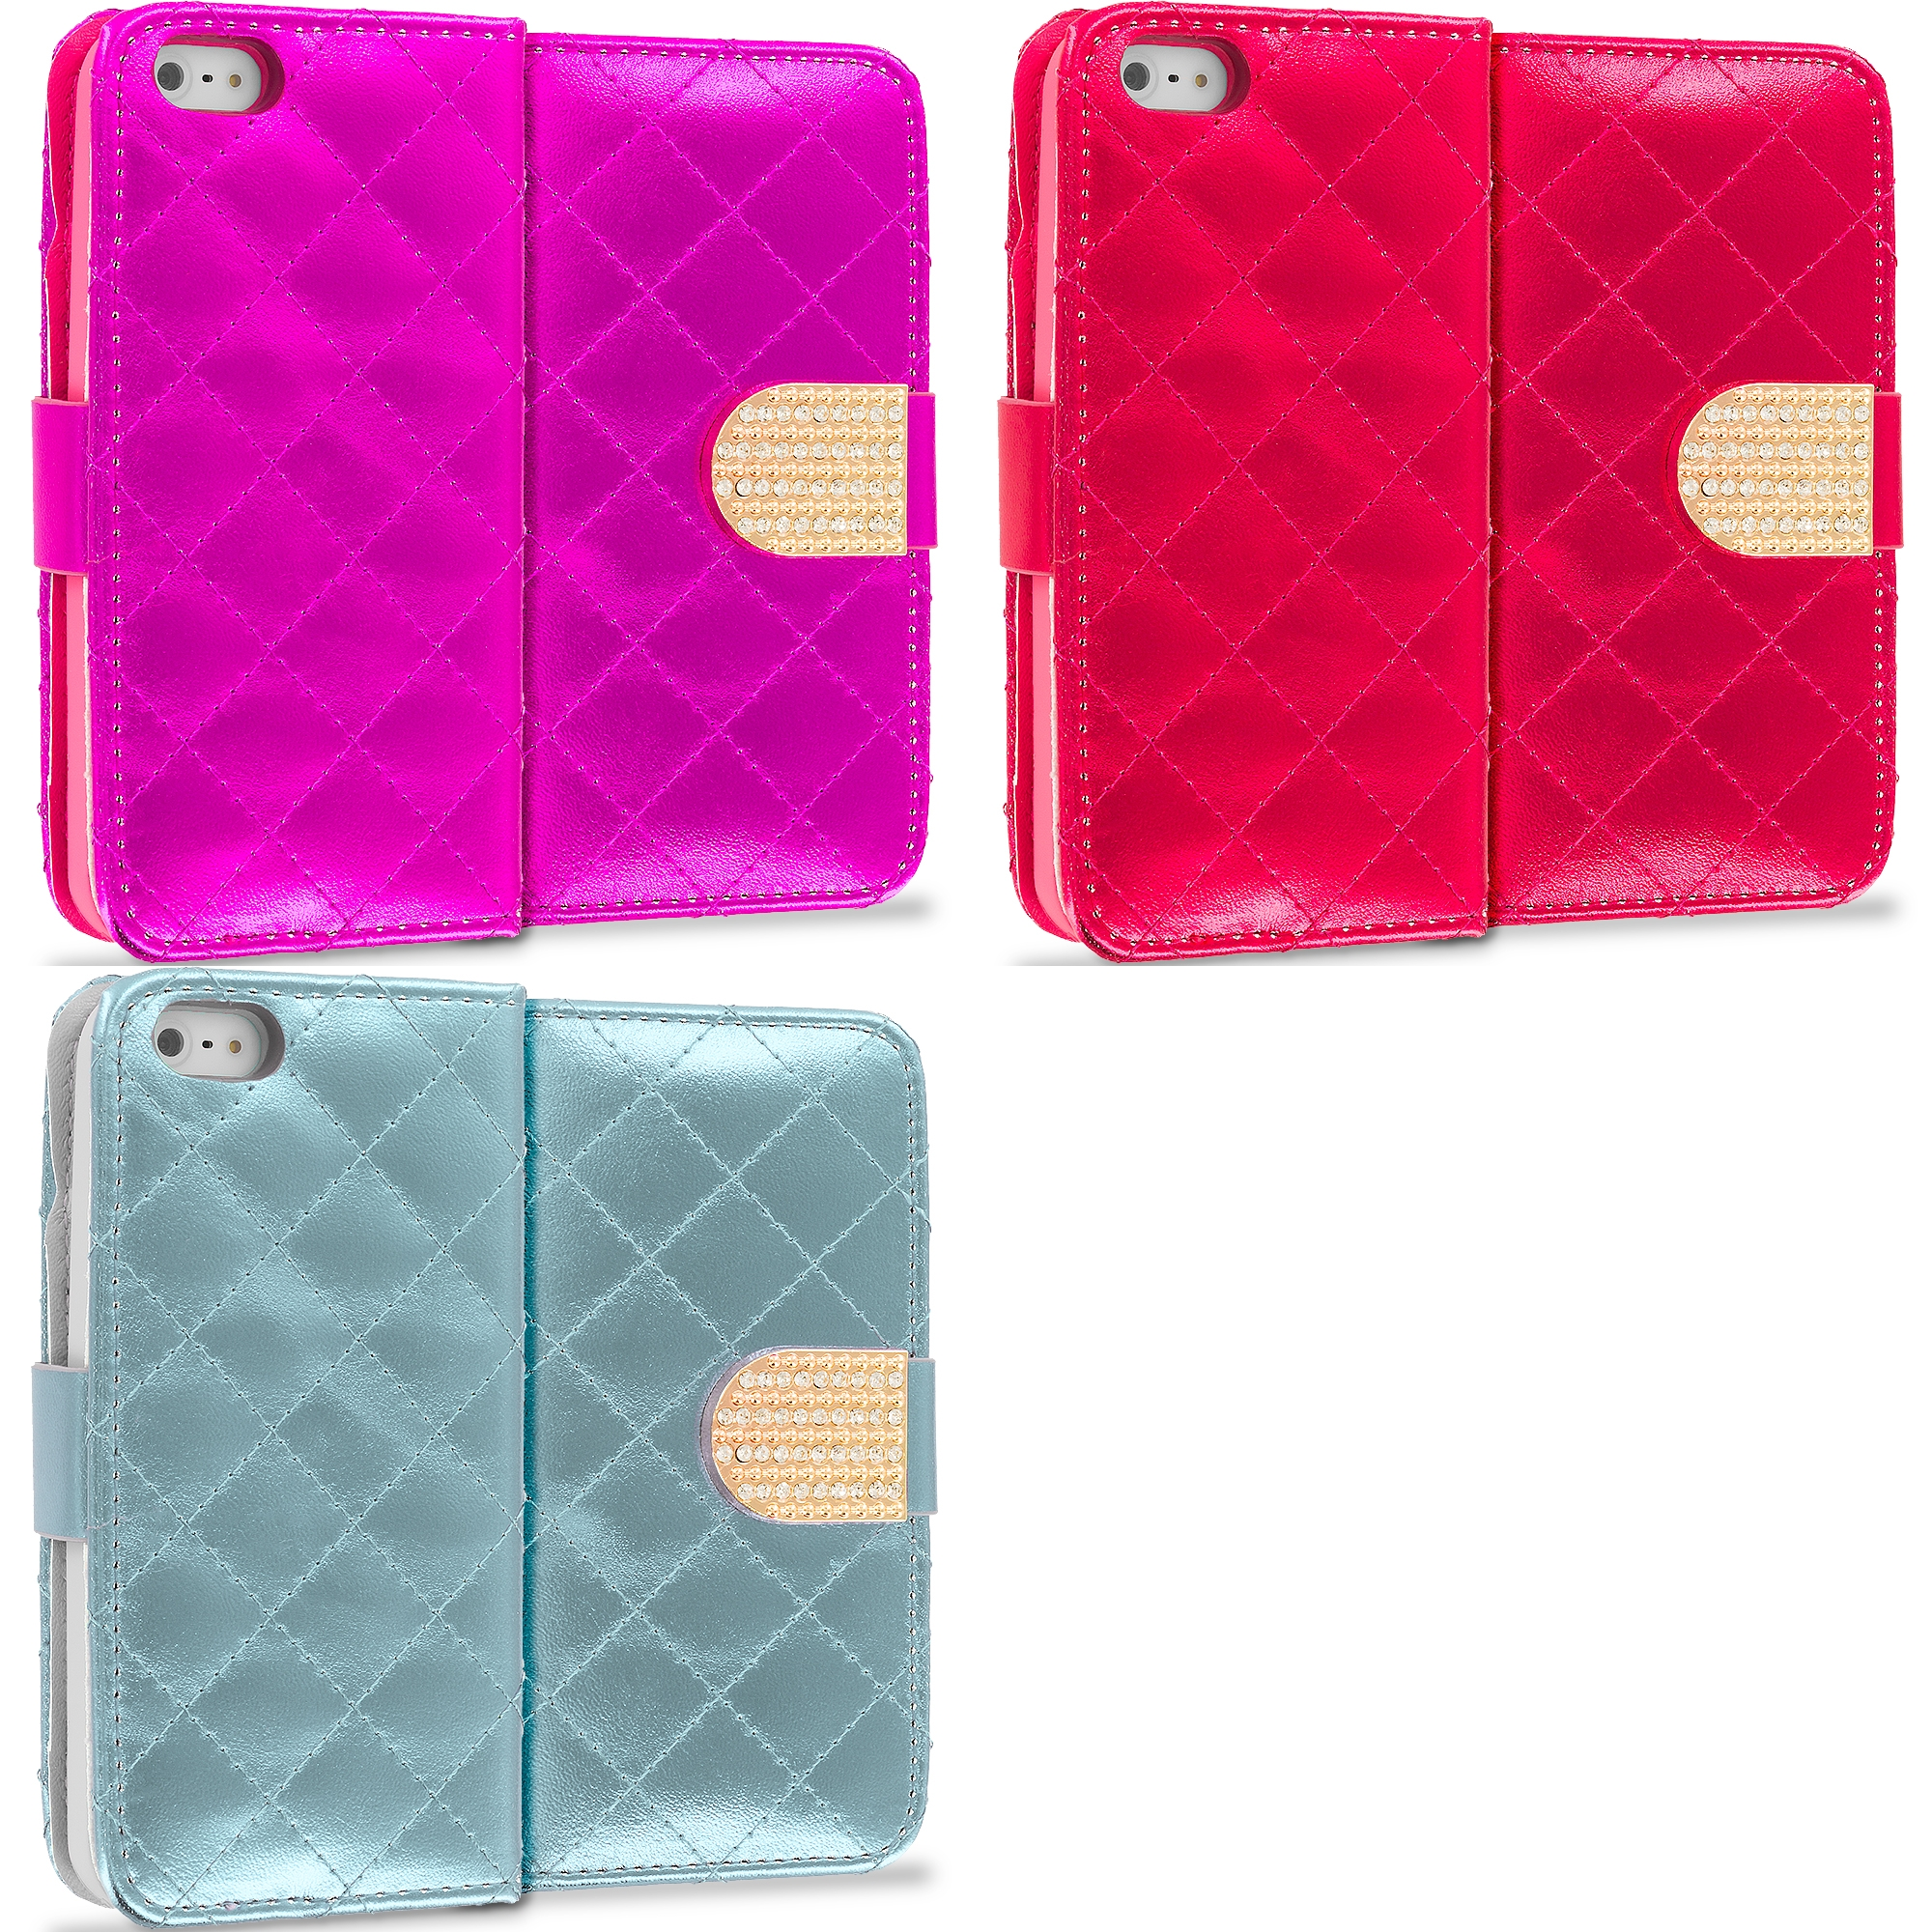 Apple iPhone 5/5S/SE Combo Pack : Hot Pink Luxury Wallet Diamond Design Case Cover With Slots